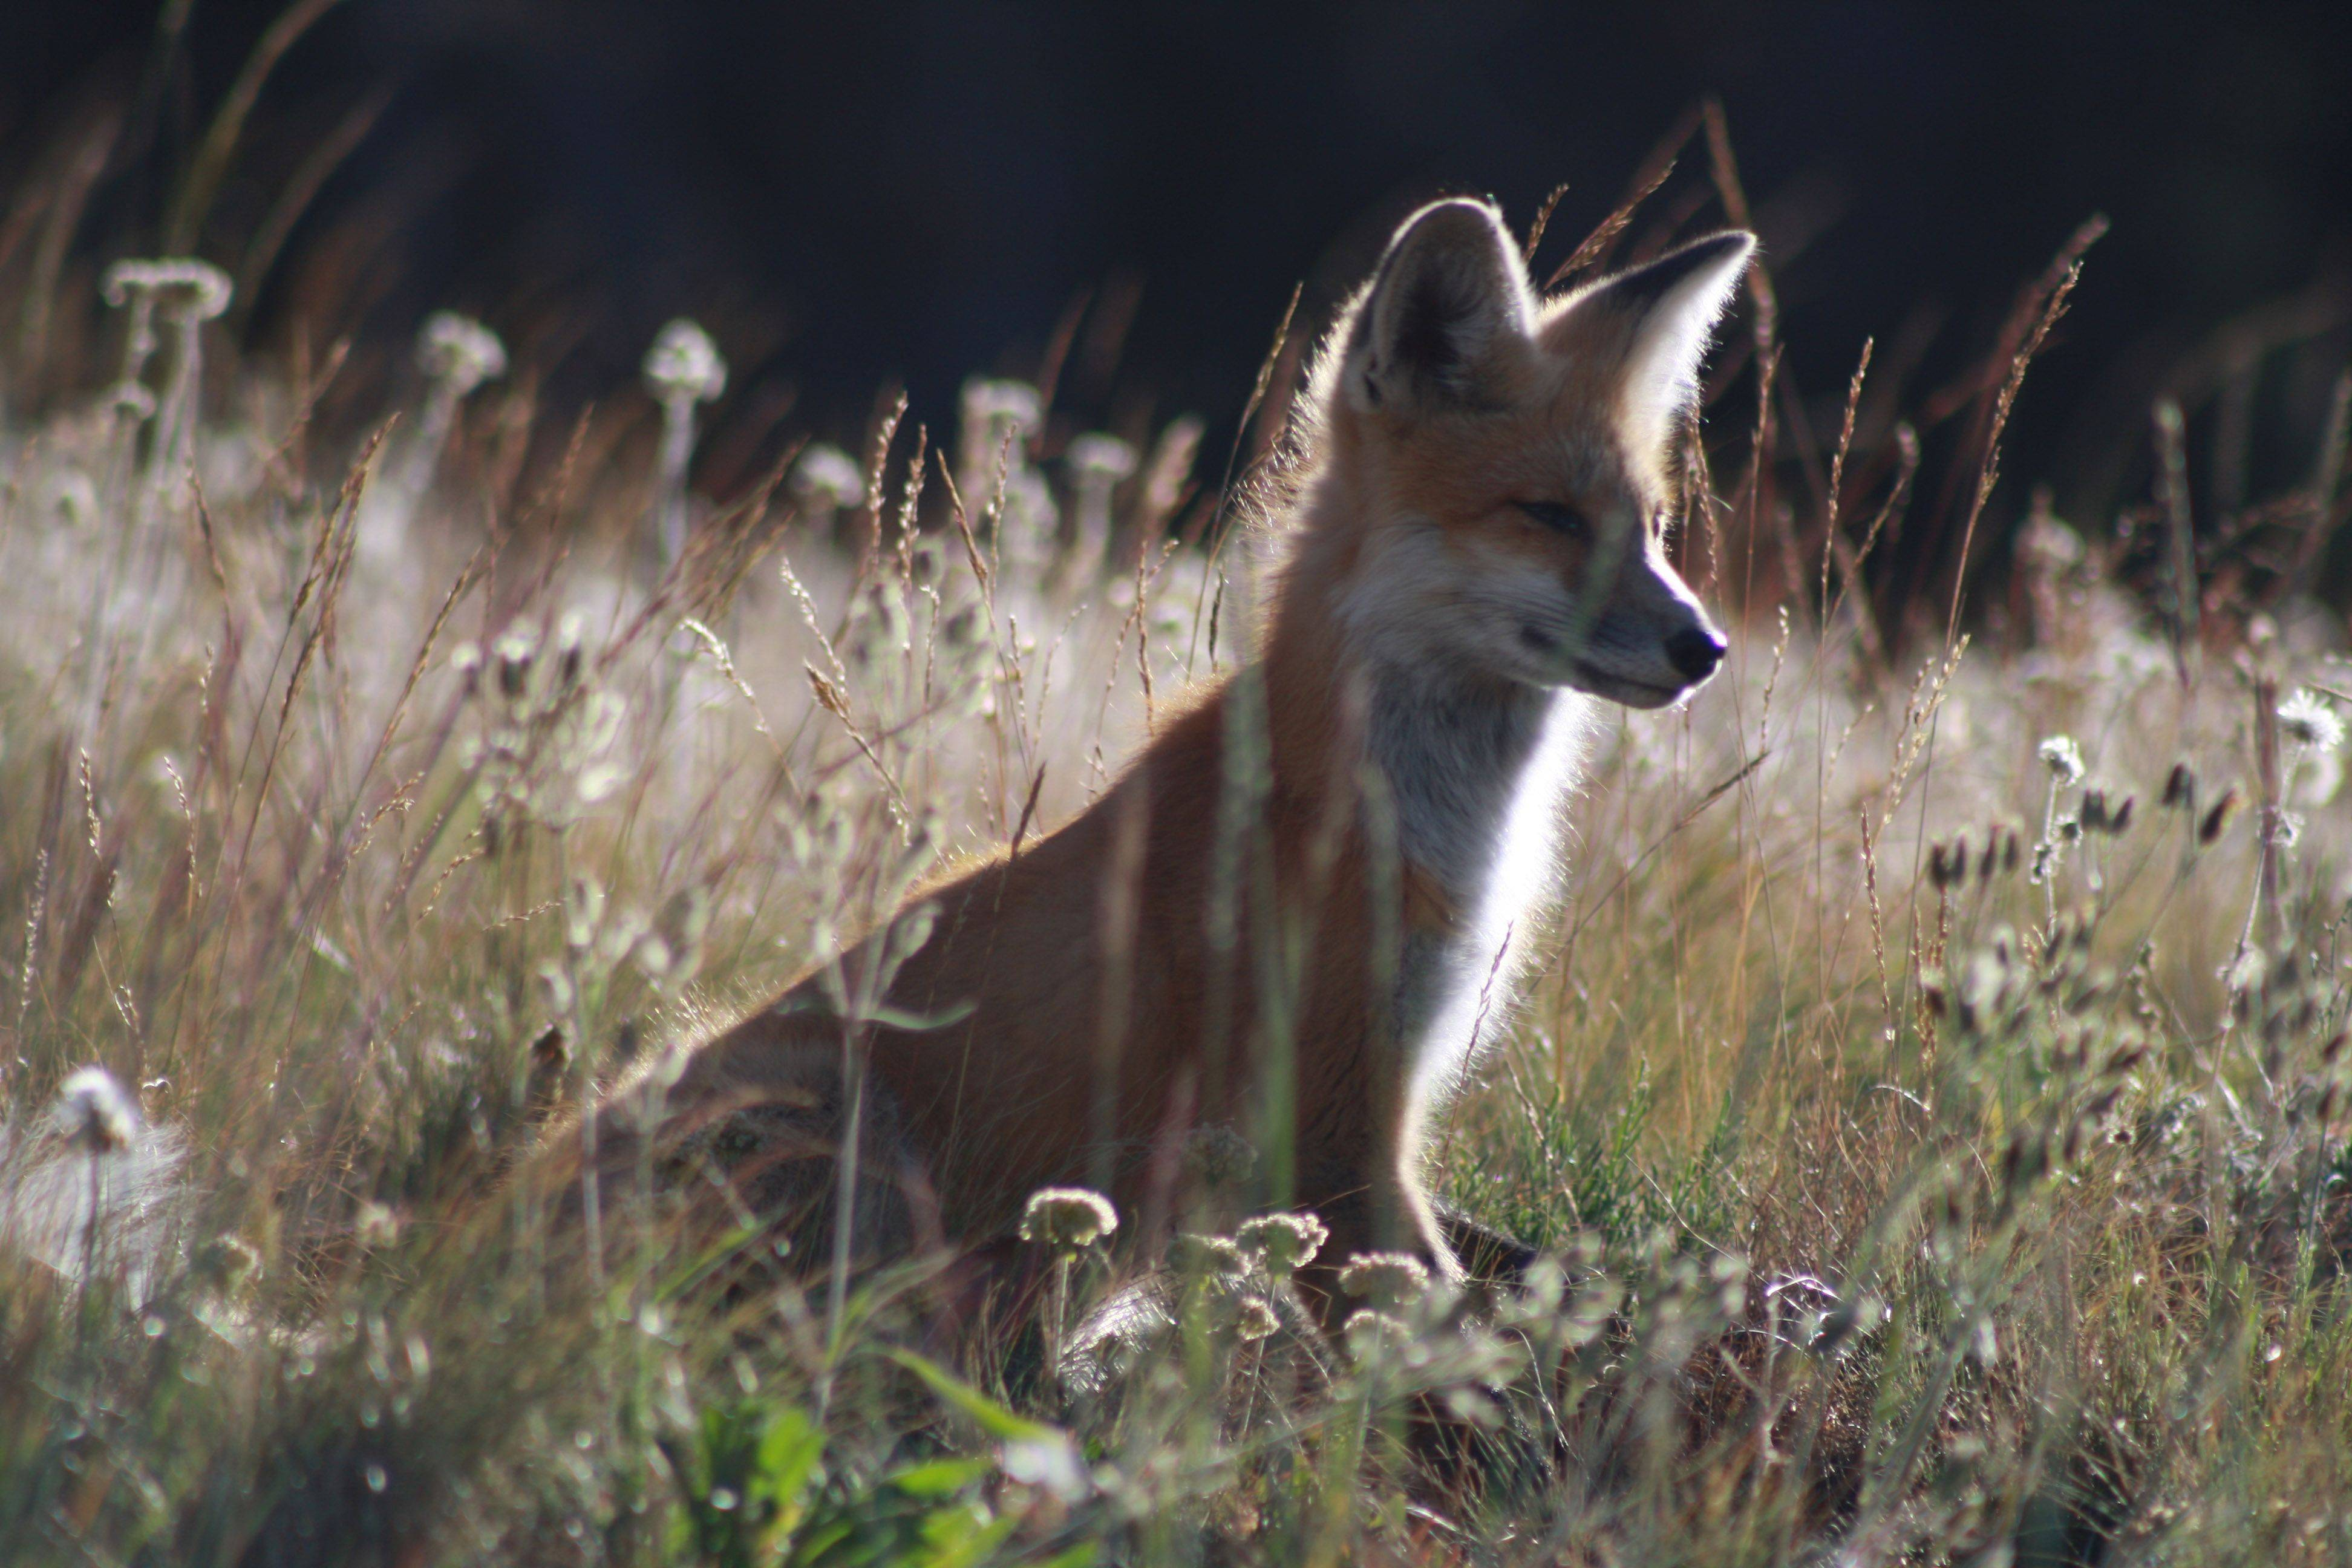 A baby fox hides in the brush on the side of Mount Washburn in Yellowstone National Park, Wyoming last August.